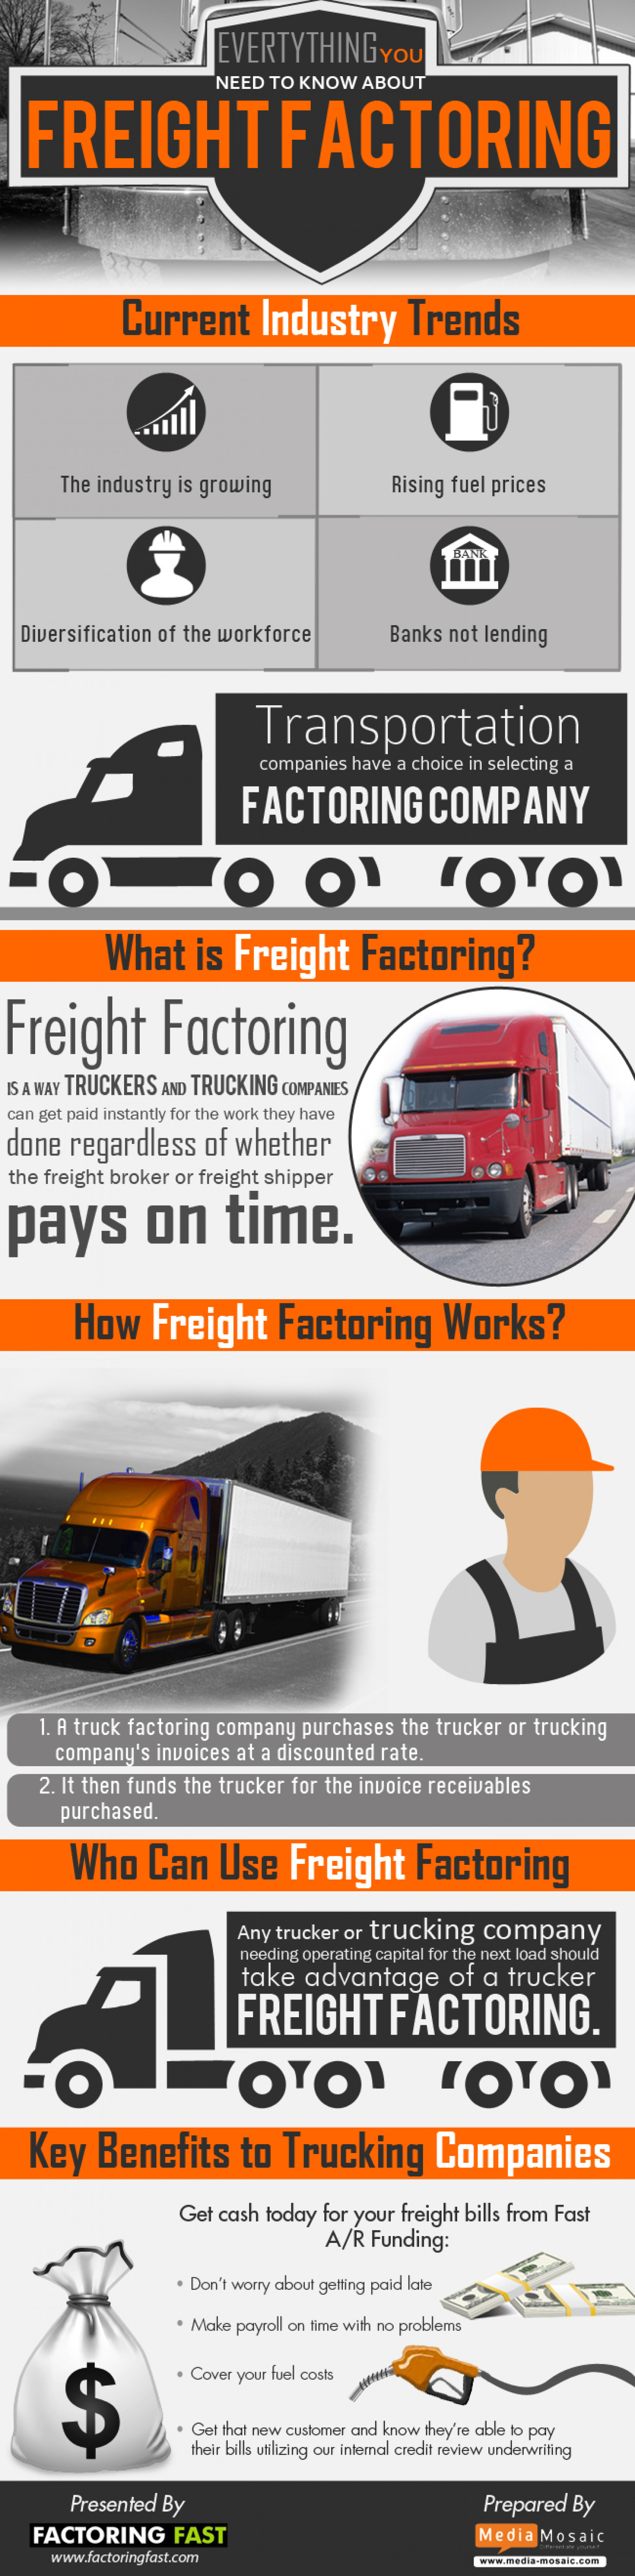 Everything You Need to Know About Freight Factoring Infographic